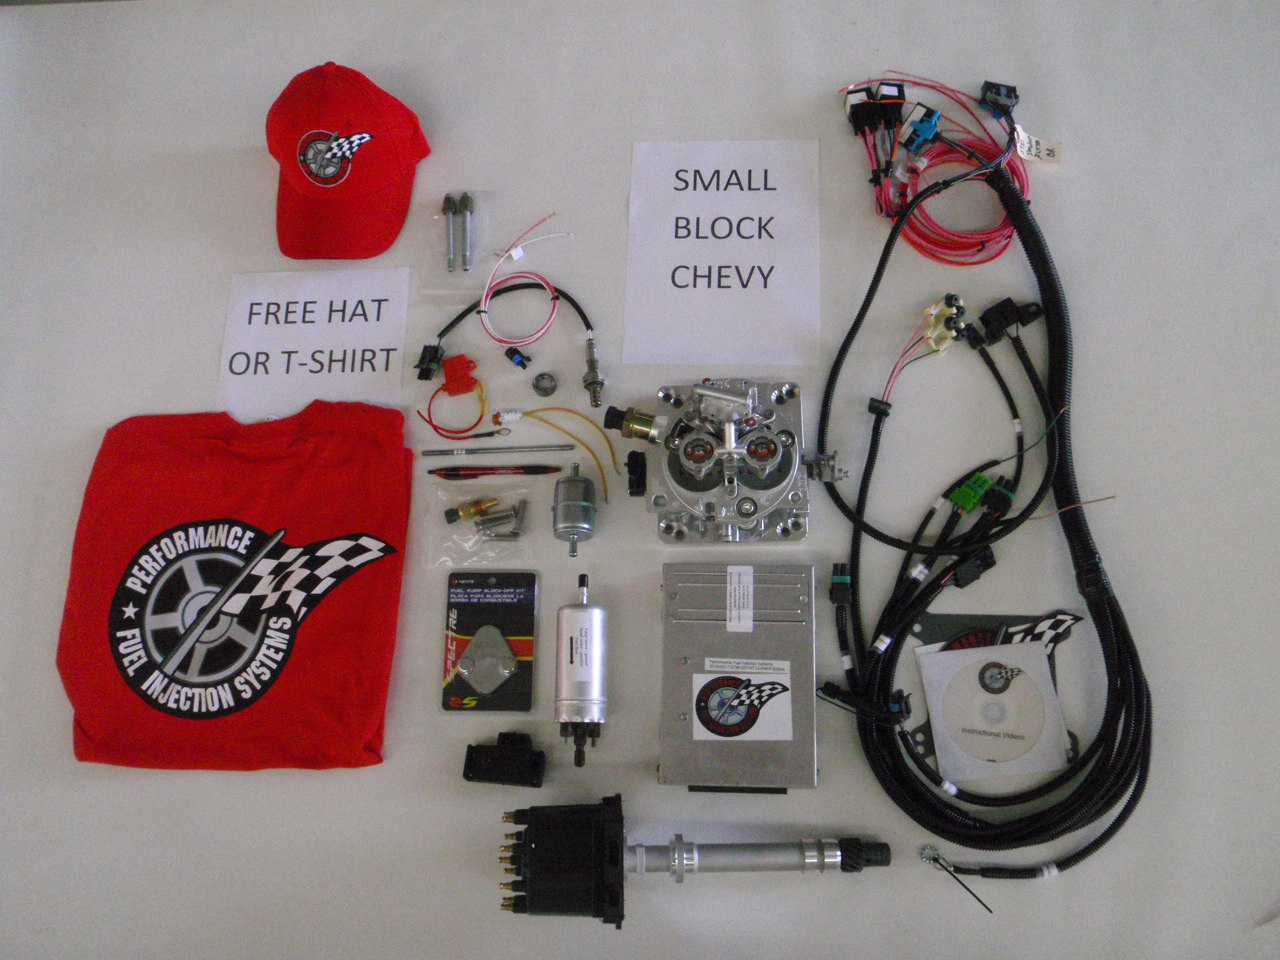 Small Block Chevy Tbi Conversion Wiring Diagram Enthusiast Harness Complete Kit For Stock 305 5 0l 794 99 517 Rh Pfisys Com Gm